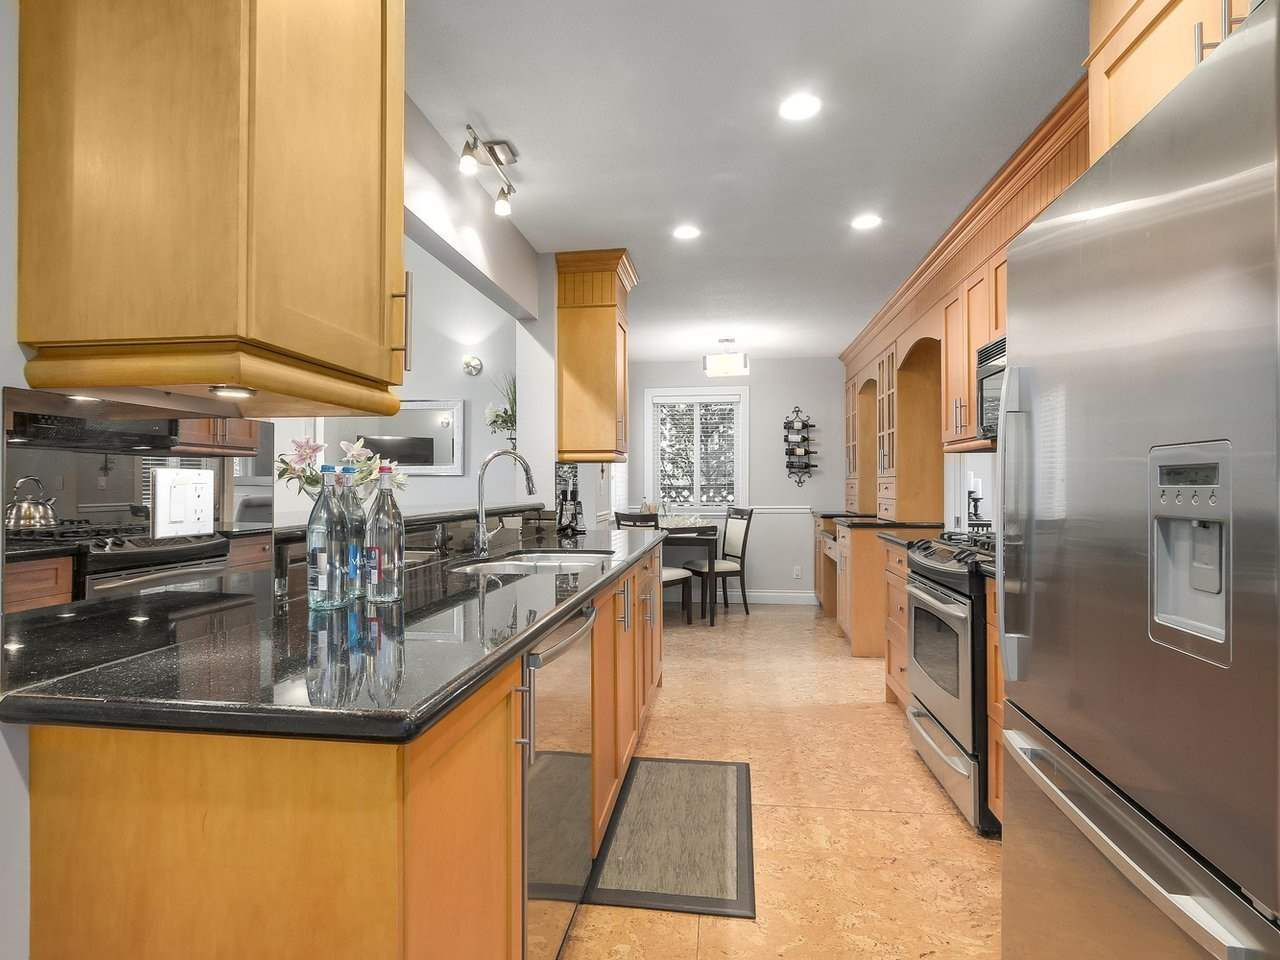 Photo 7: Photos: 658 E 4TH STREET in North Vancouver: Queensbury House for sale : MLS®# R2222993